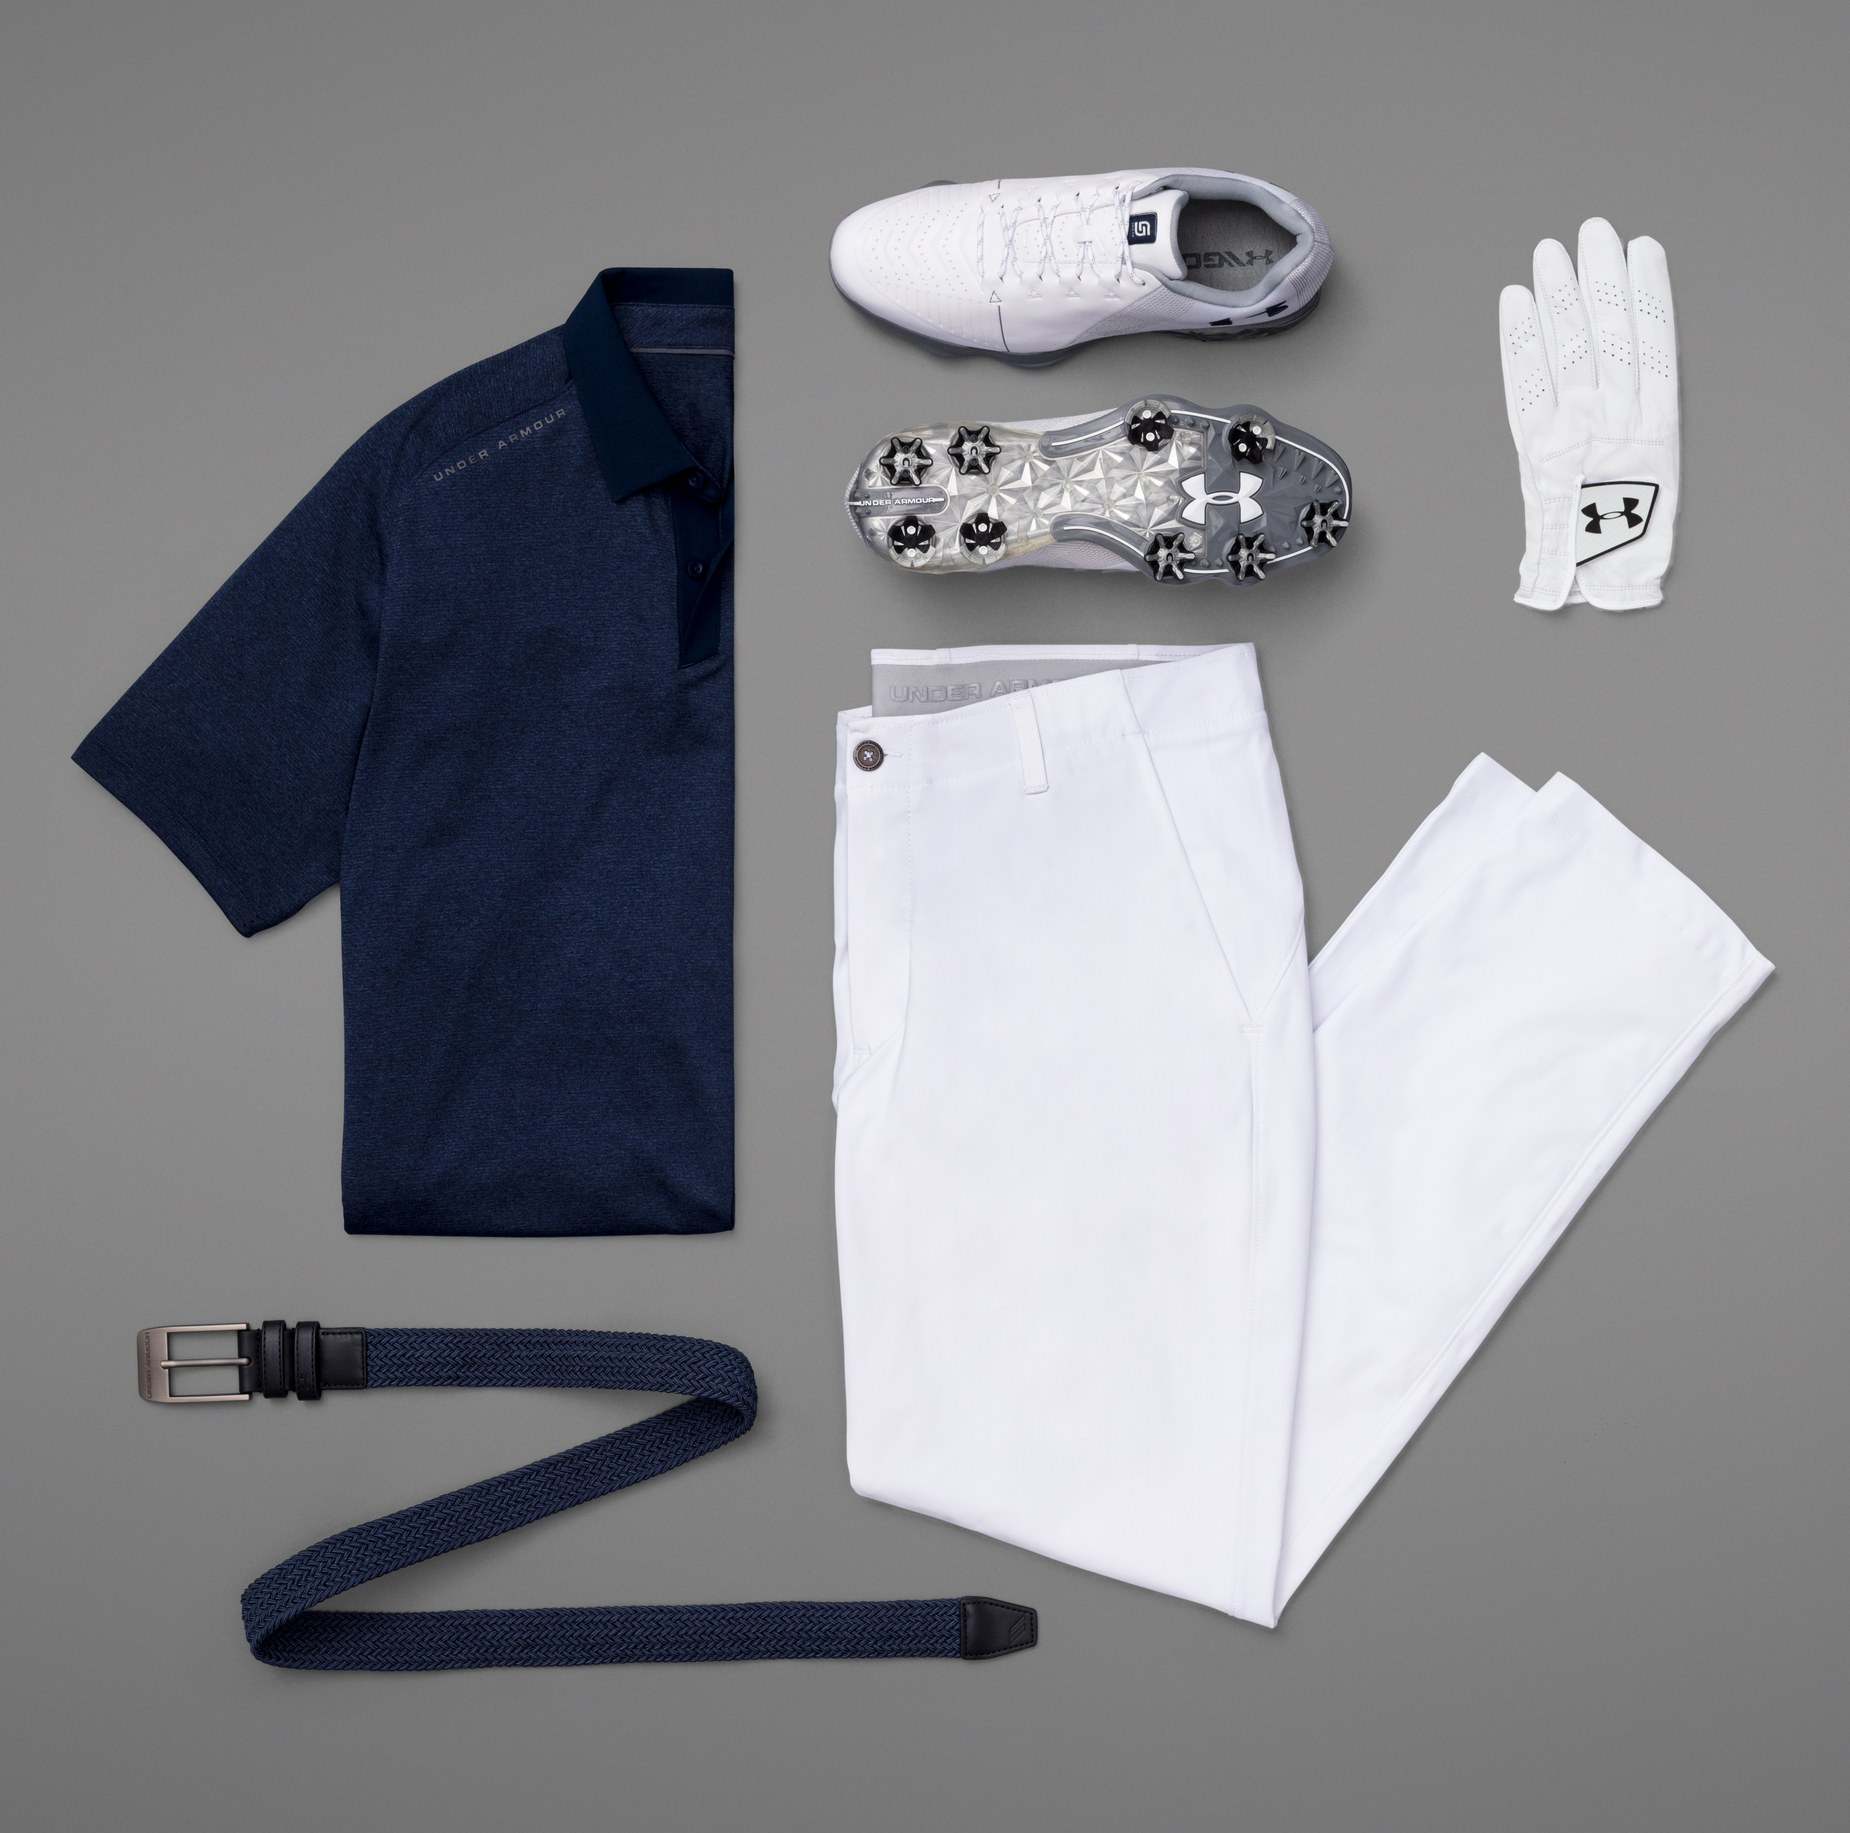 Jordan Spieth's Masters Outfits: Thursday